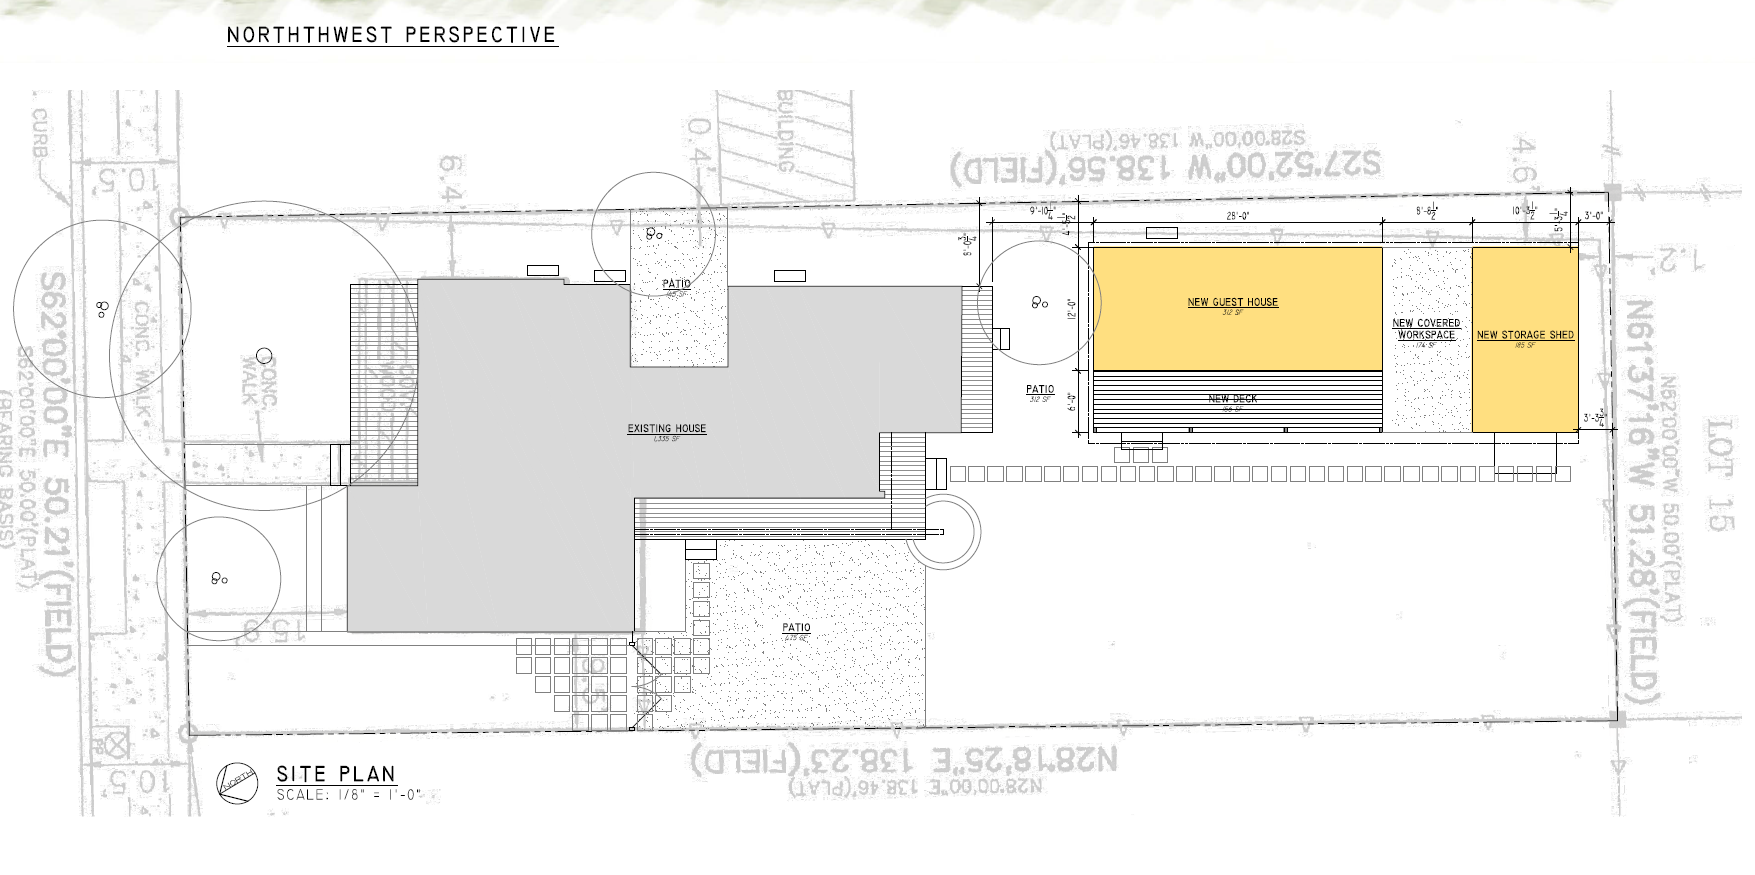 Site Plan Rear Structure When Constructing New Buildings New Construction Additions Rear Accessory Structu Design Guidelines Design Resources Site Plans